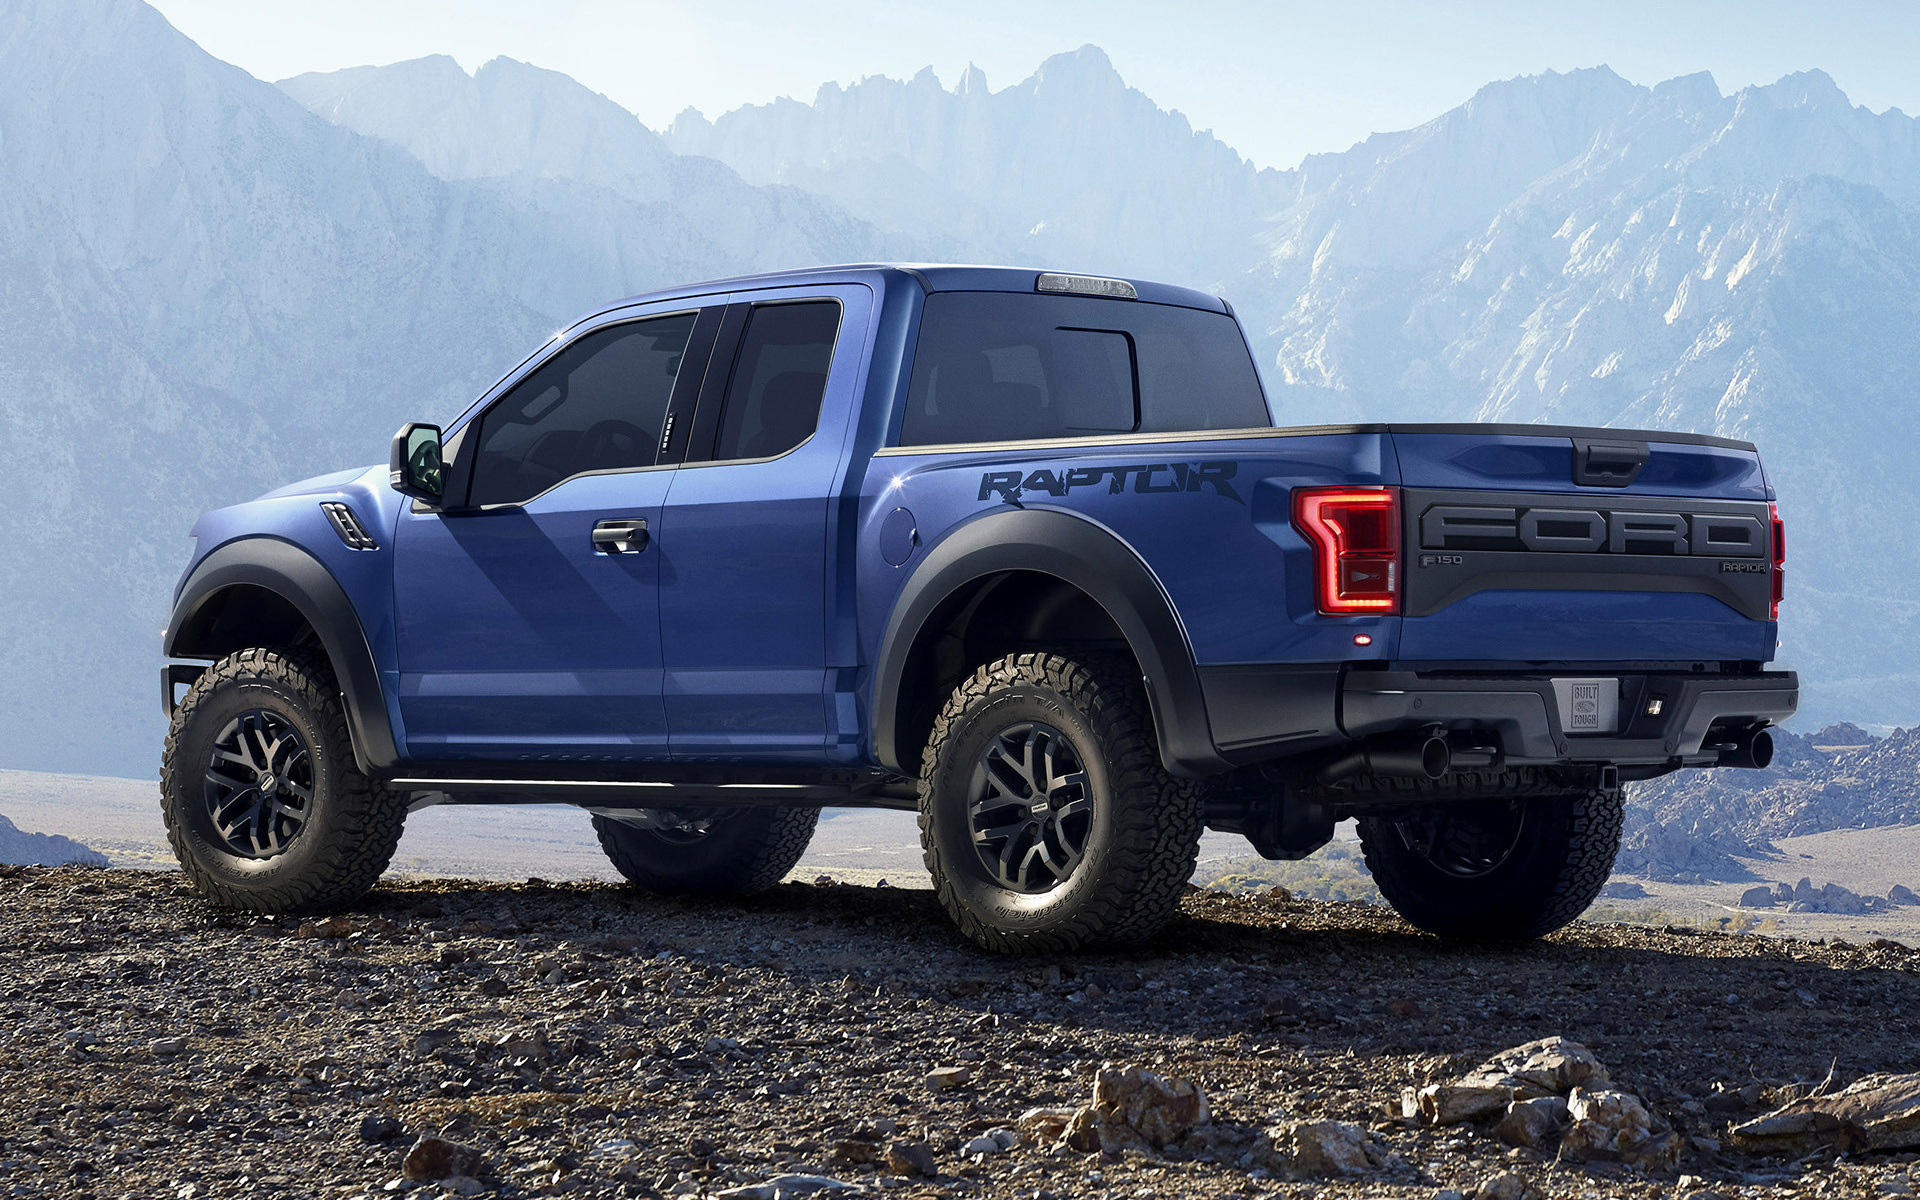 Ford F Raptor Supercab Car Wallpaper furthermore Ford F Raptor Up Tough Guard Hood Protector Tg R A as well Ford F Super Crew moreover Ford F Raptor V also Maxresdefault. on 2017 ford f 150 raptor